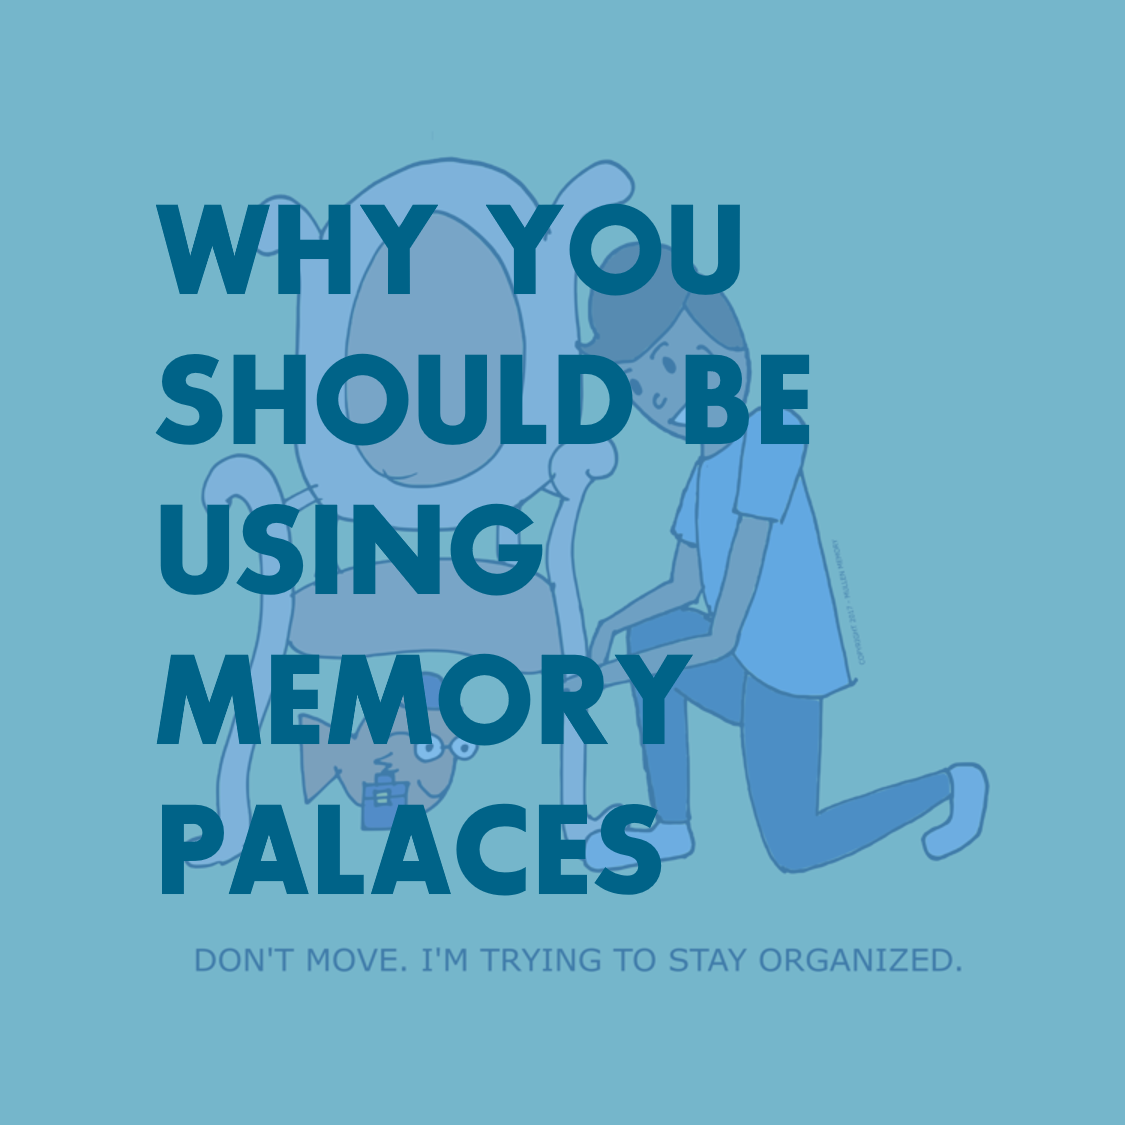 Palace of Memory: a description of the method for memorizing 68